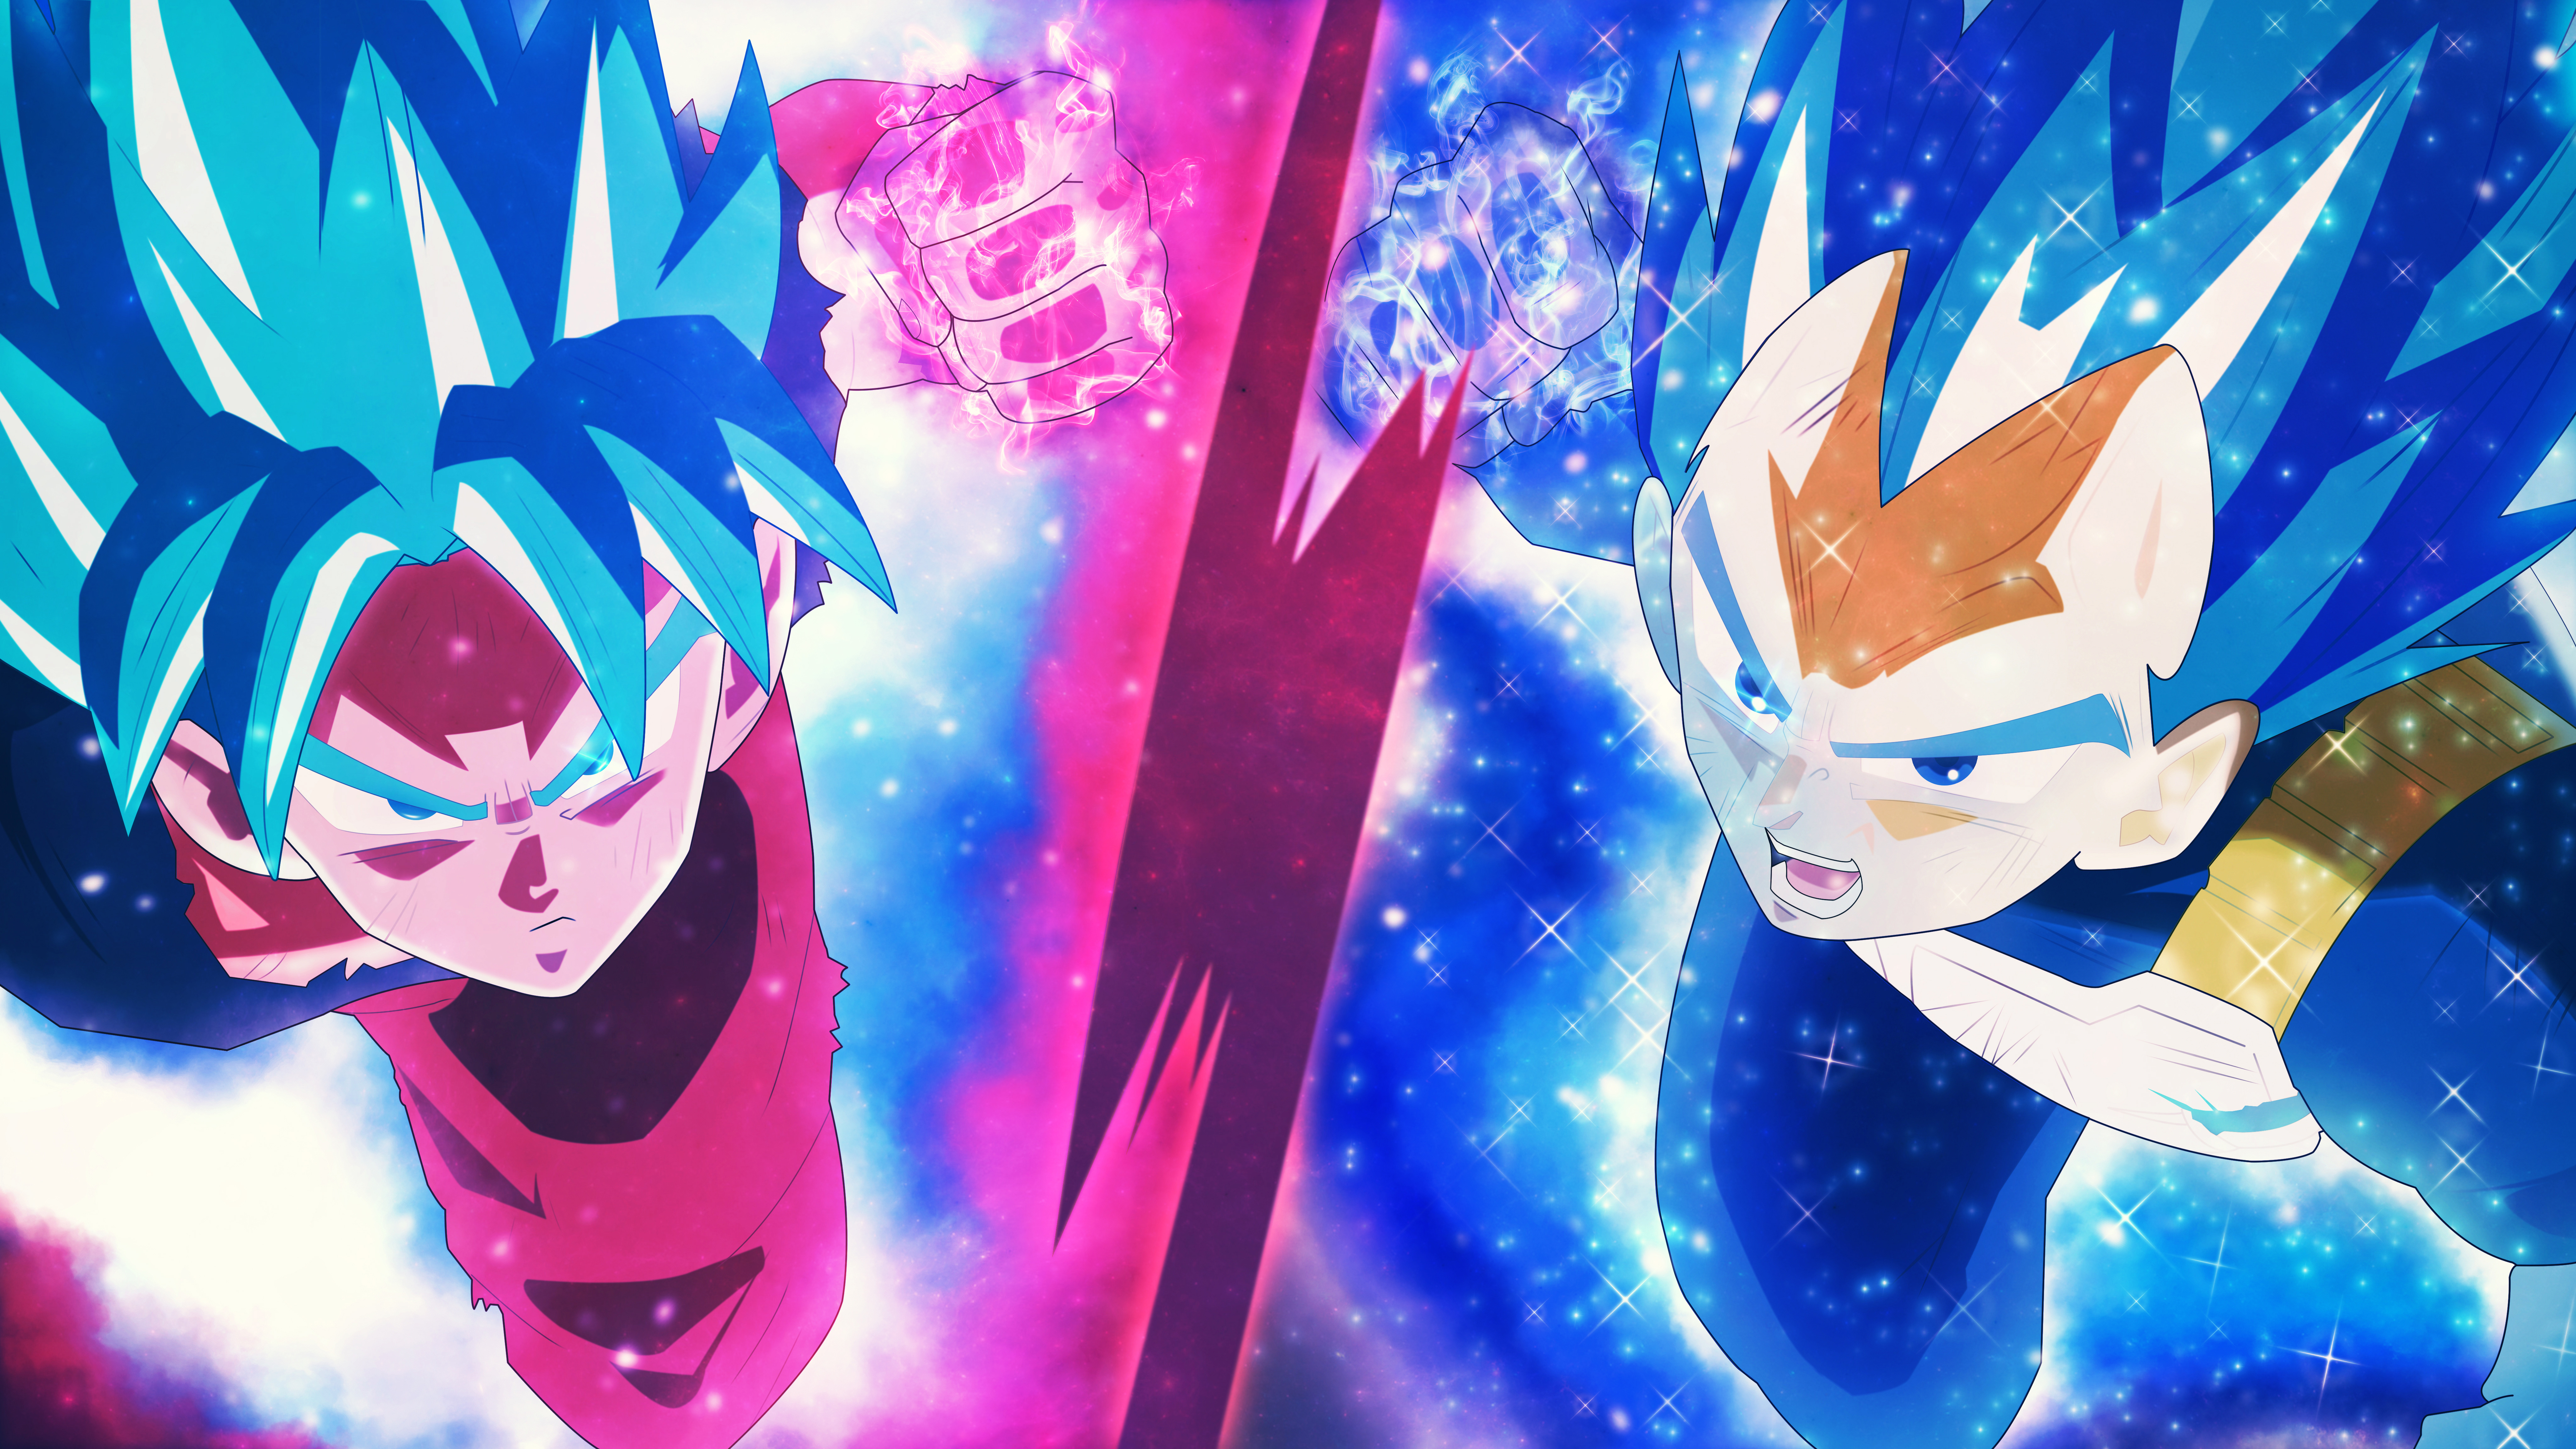 1600x900 Dragon Ball Super Super Saiyan Blue 8k 1600x900 Resolution Hd 4k Wallpapers Images Backgrounds Photos And Pictures